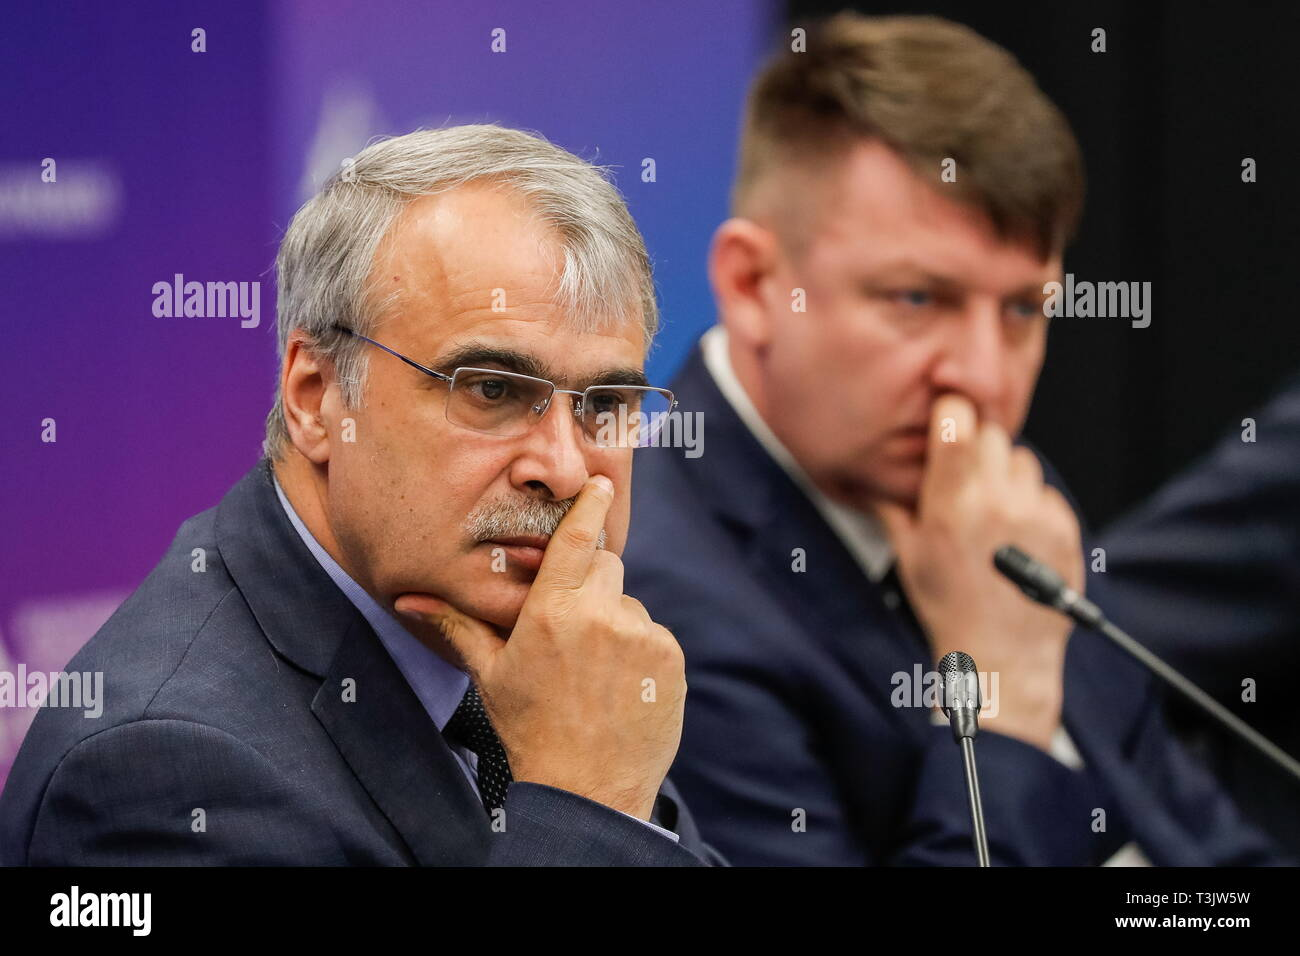 St Petersburg, Russia. 10th Apr, 2019. ST PETERSBURG, RUSSIA - APRIL 10, 2019: Aligyushad Kerimov (L), director of Kim Research Center for the study of permafrost, and Andrei Basov, head of the Federal Centre for Regulation, Standardisation and Technical Conformity Assessment in Construction, attend the 2019 International Arctic Forum at ExpoForum Convention and Exhibition Centre. Sergei Karpukhin/TASS Host Photo Agency Credit: ITAR-TASS News Agency/Alamy Live News - Stock Image